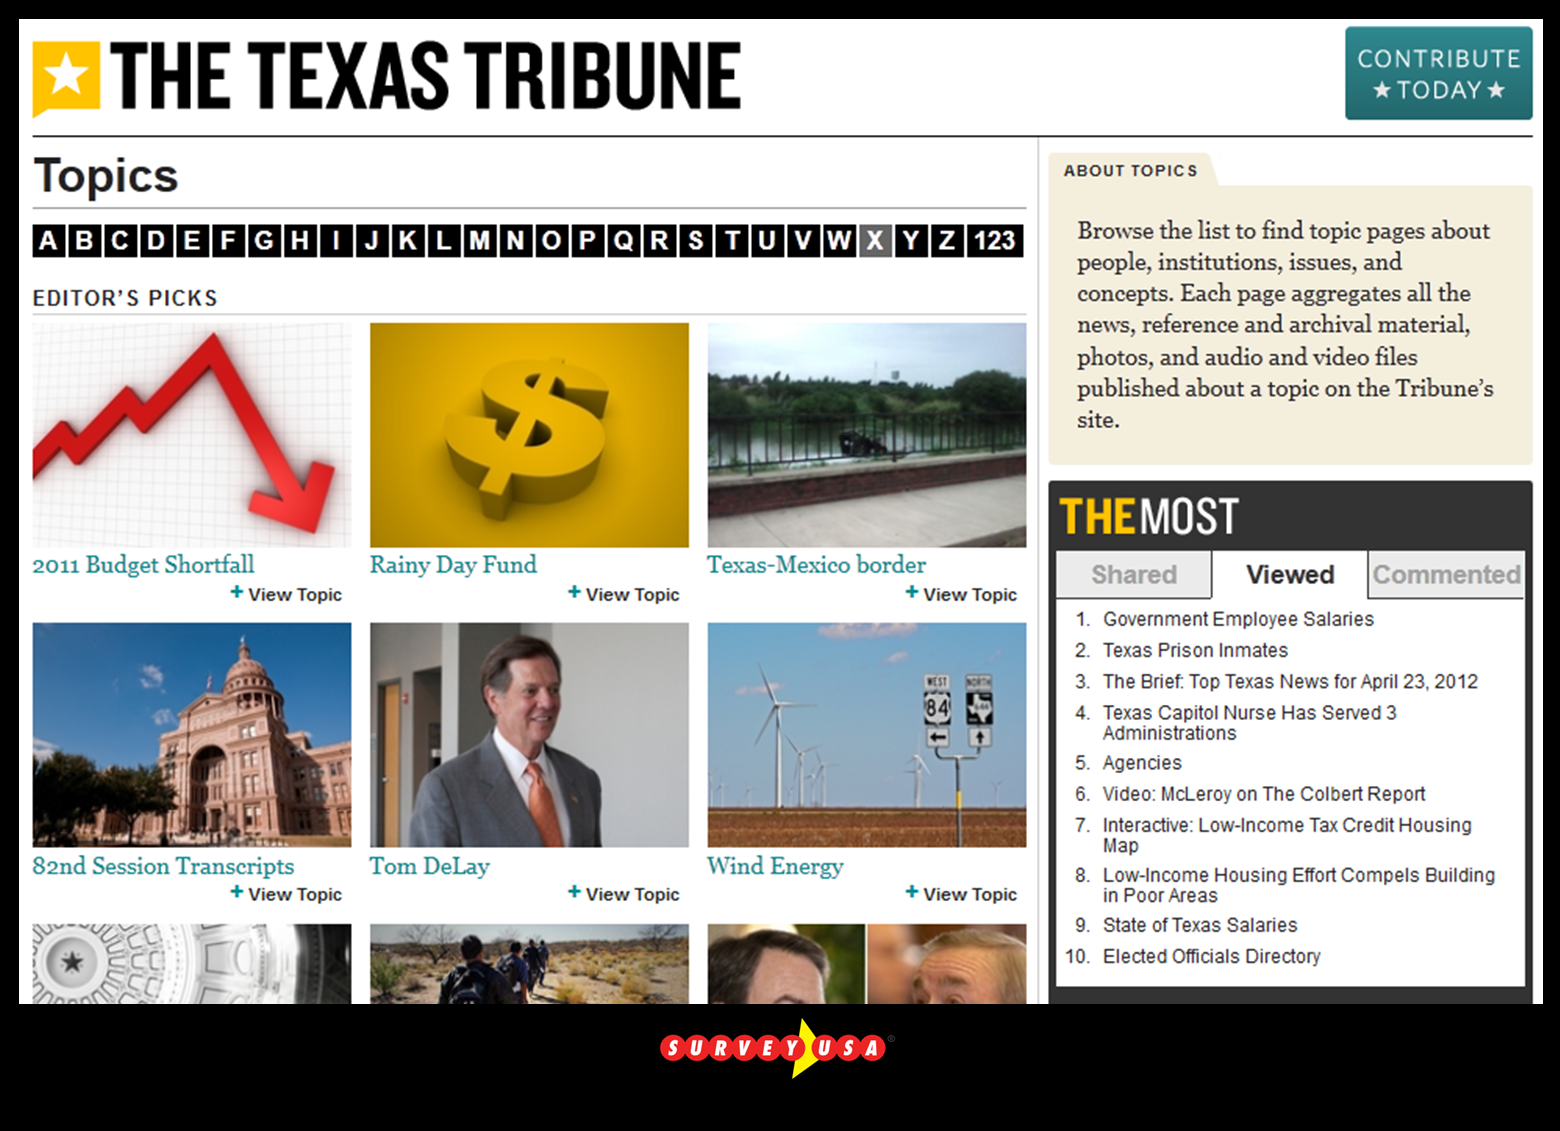 Texas Tribune on 04/24/12